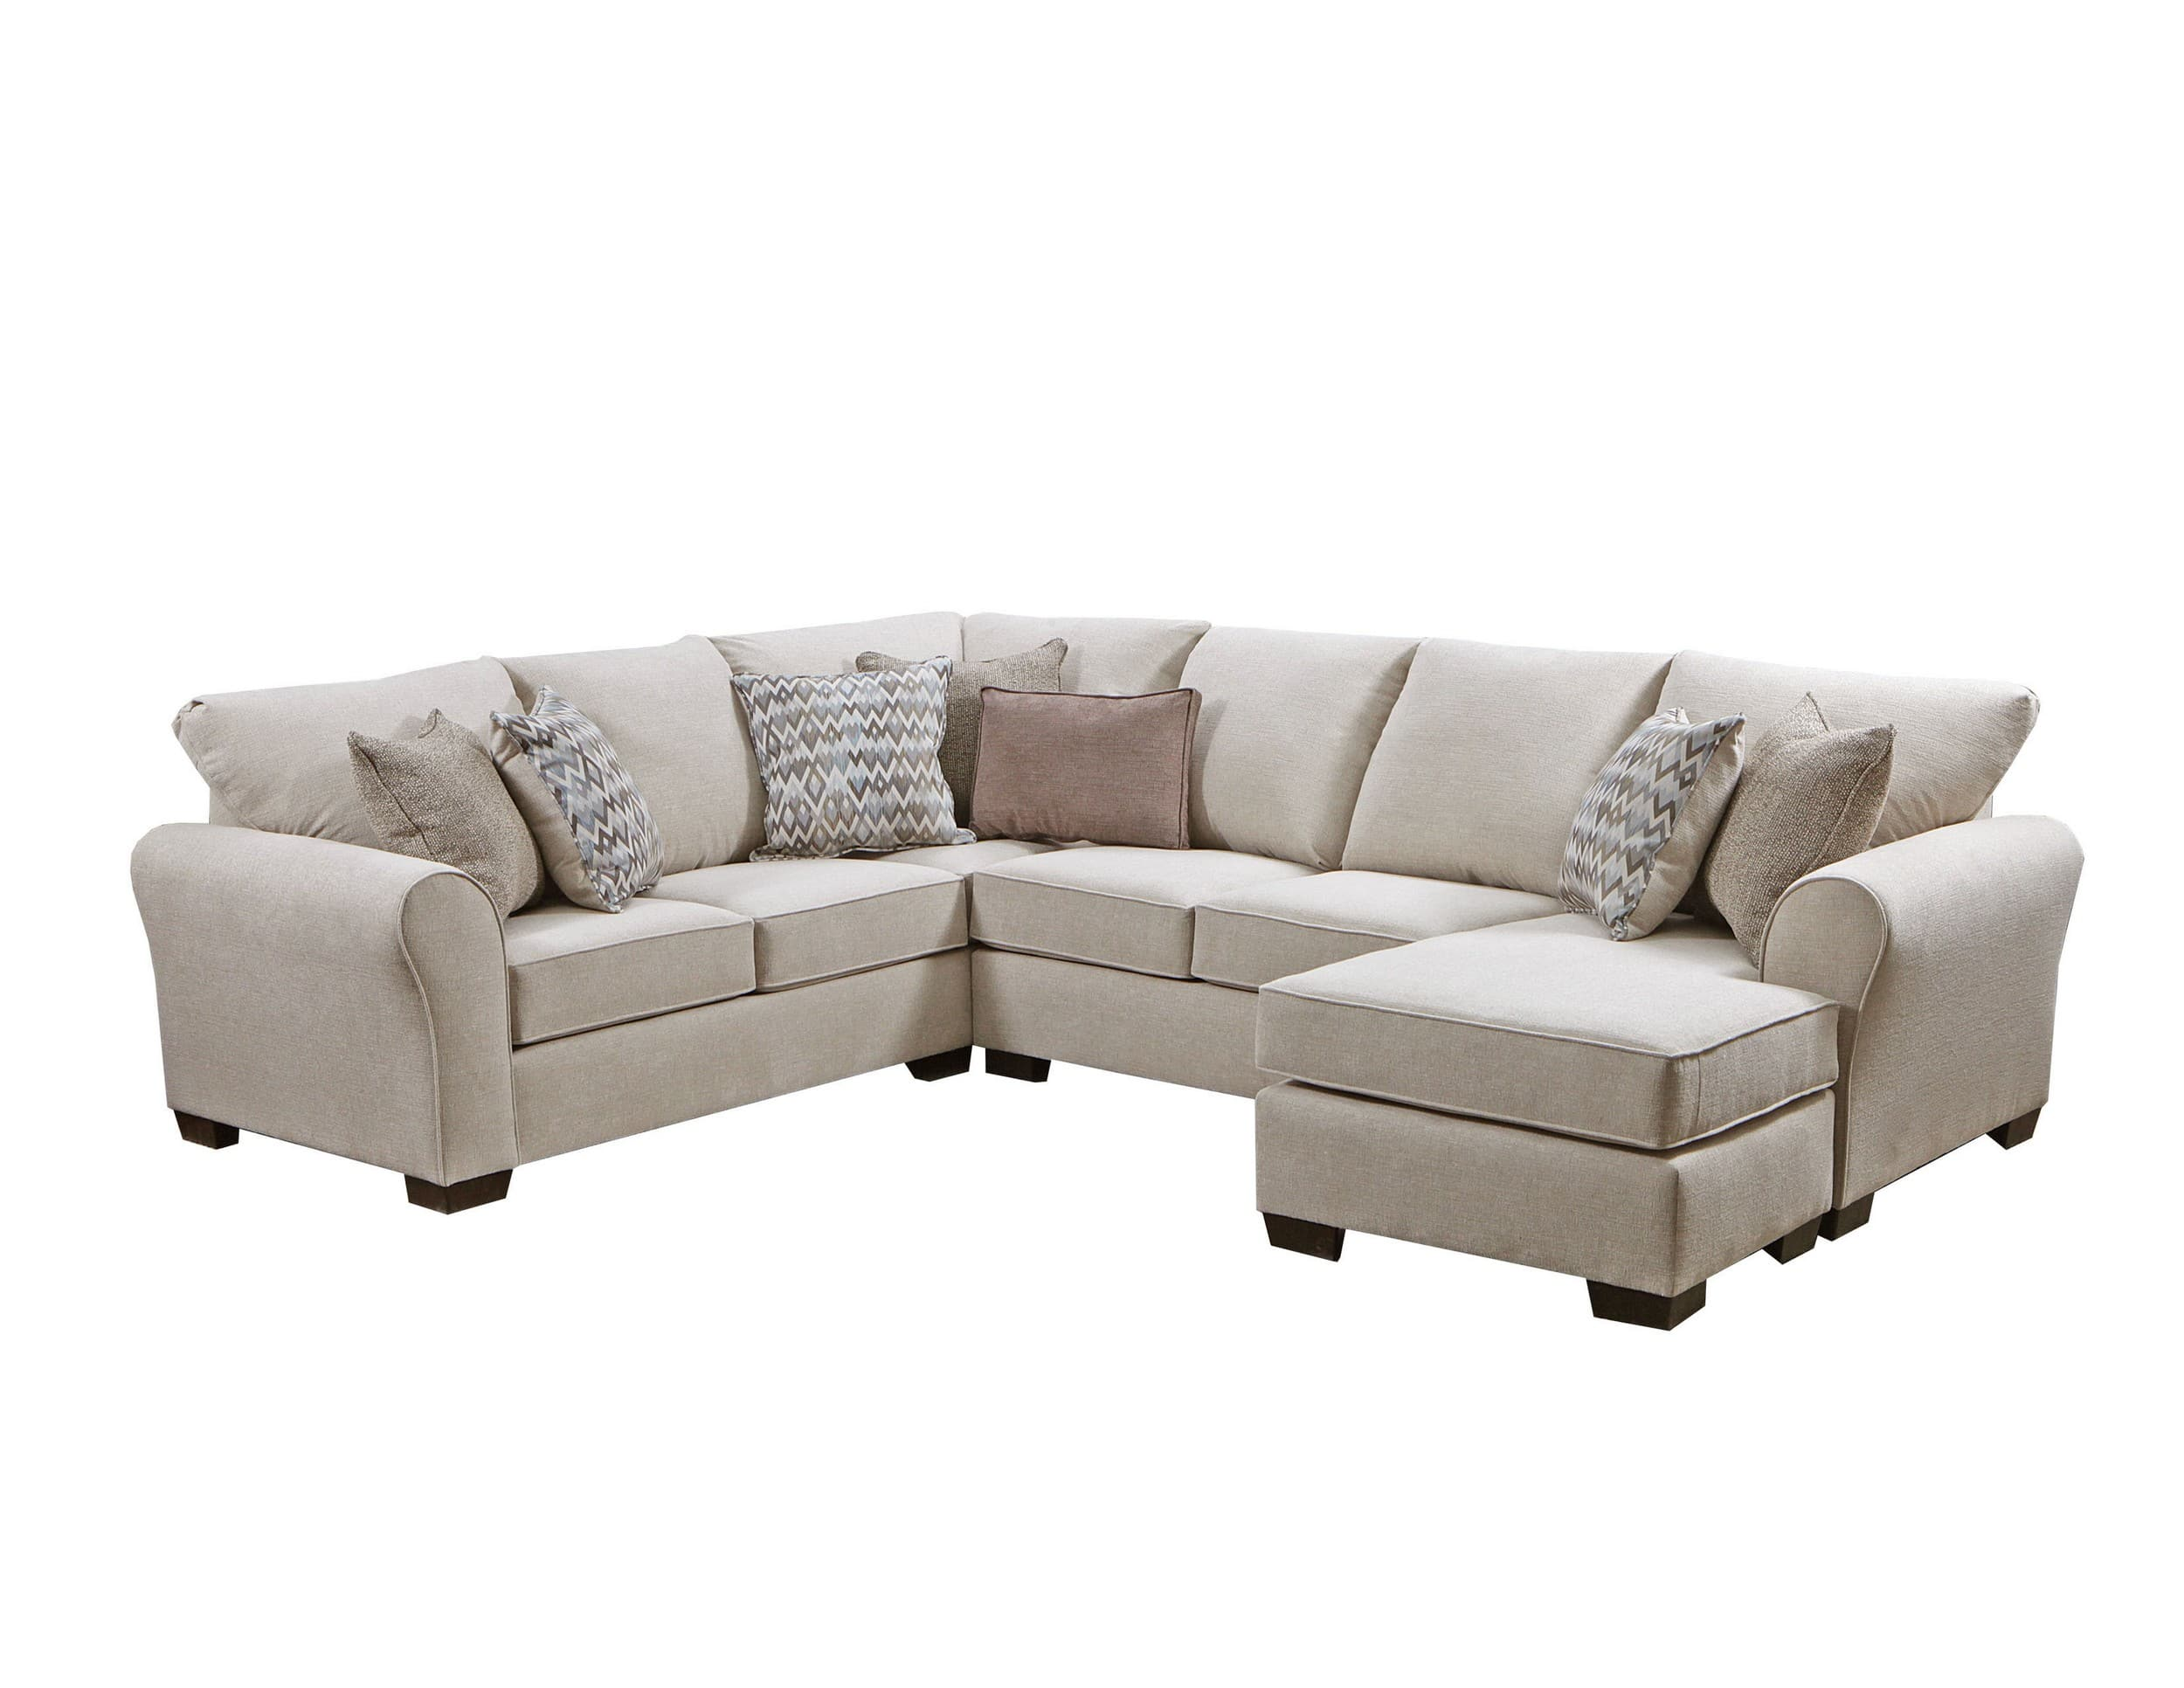 Simmons Upholstery Boston Linen 2-Piece Sectional Sofa & Reviews ...